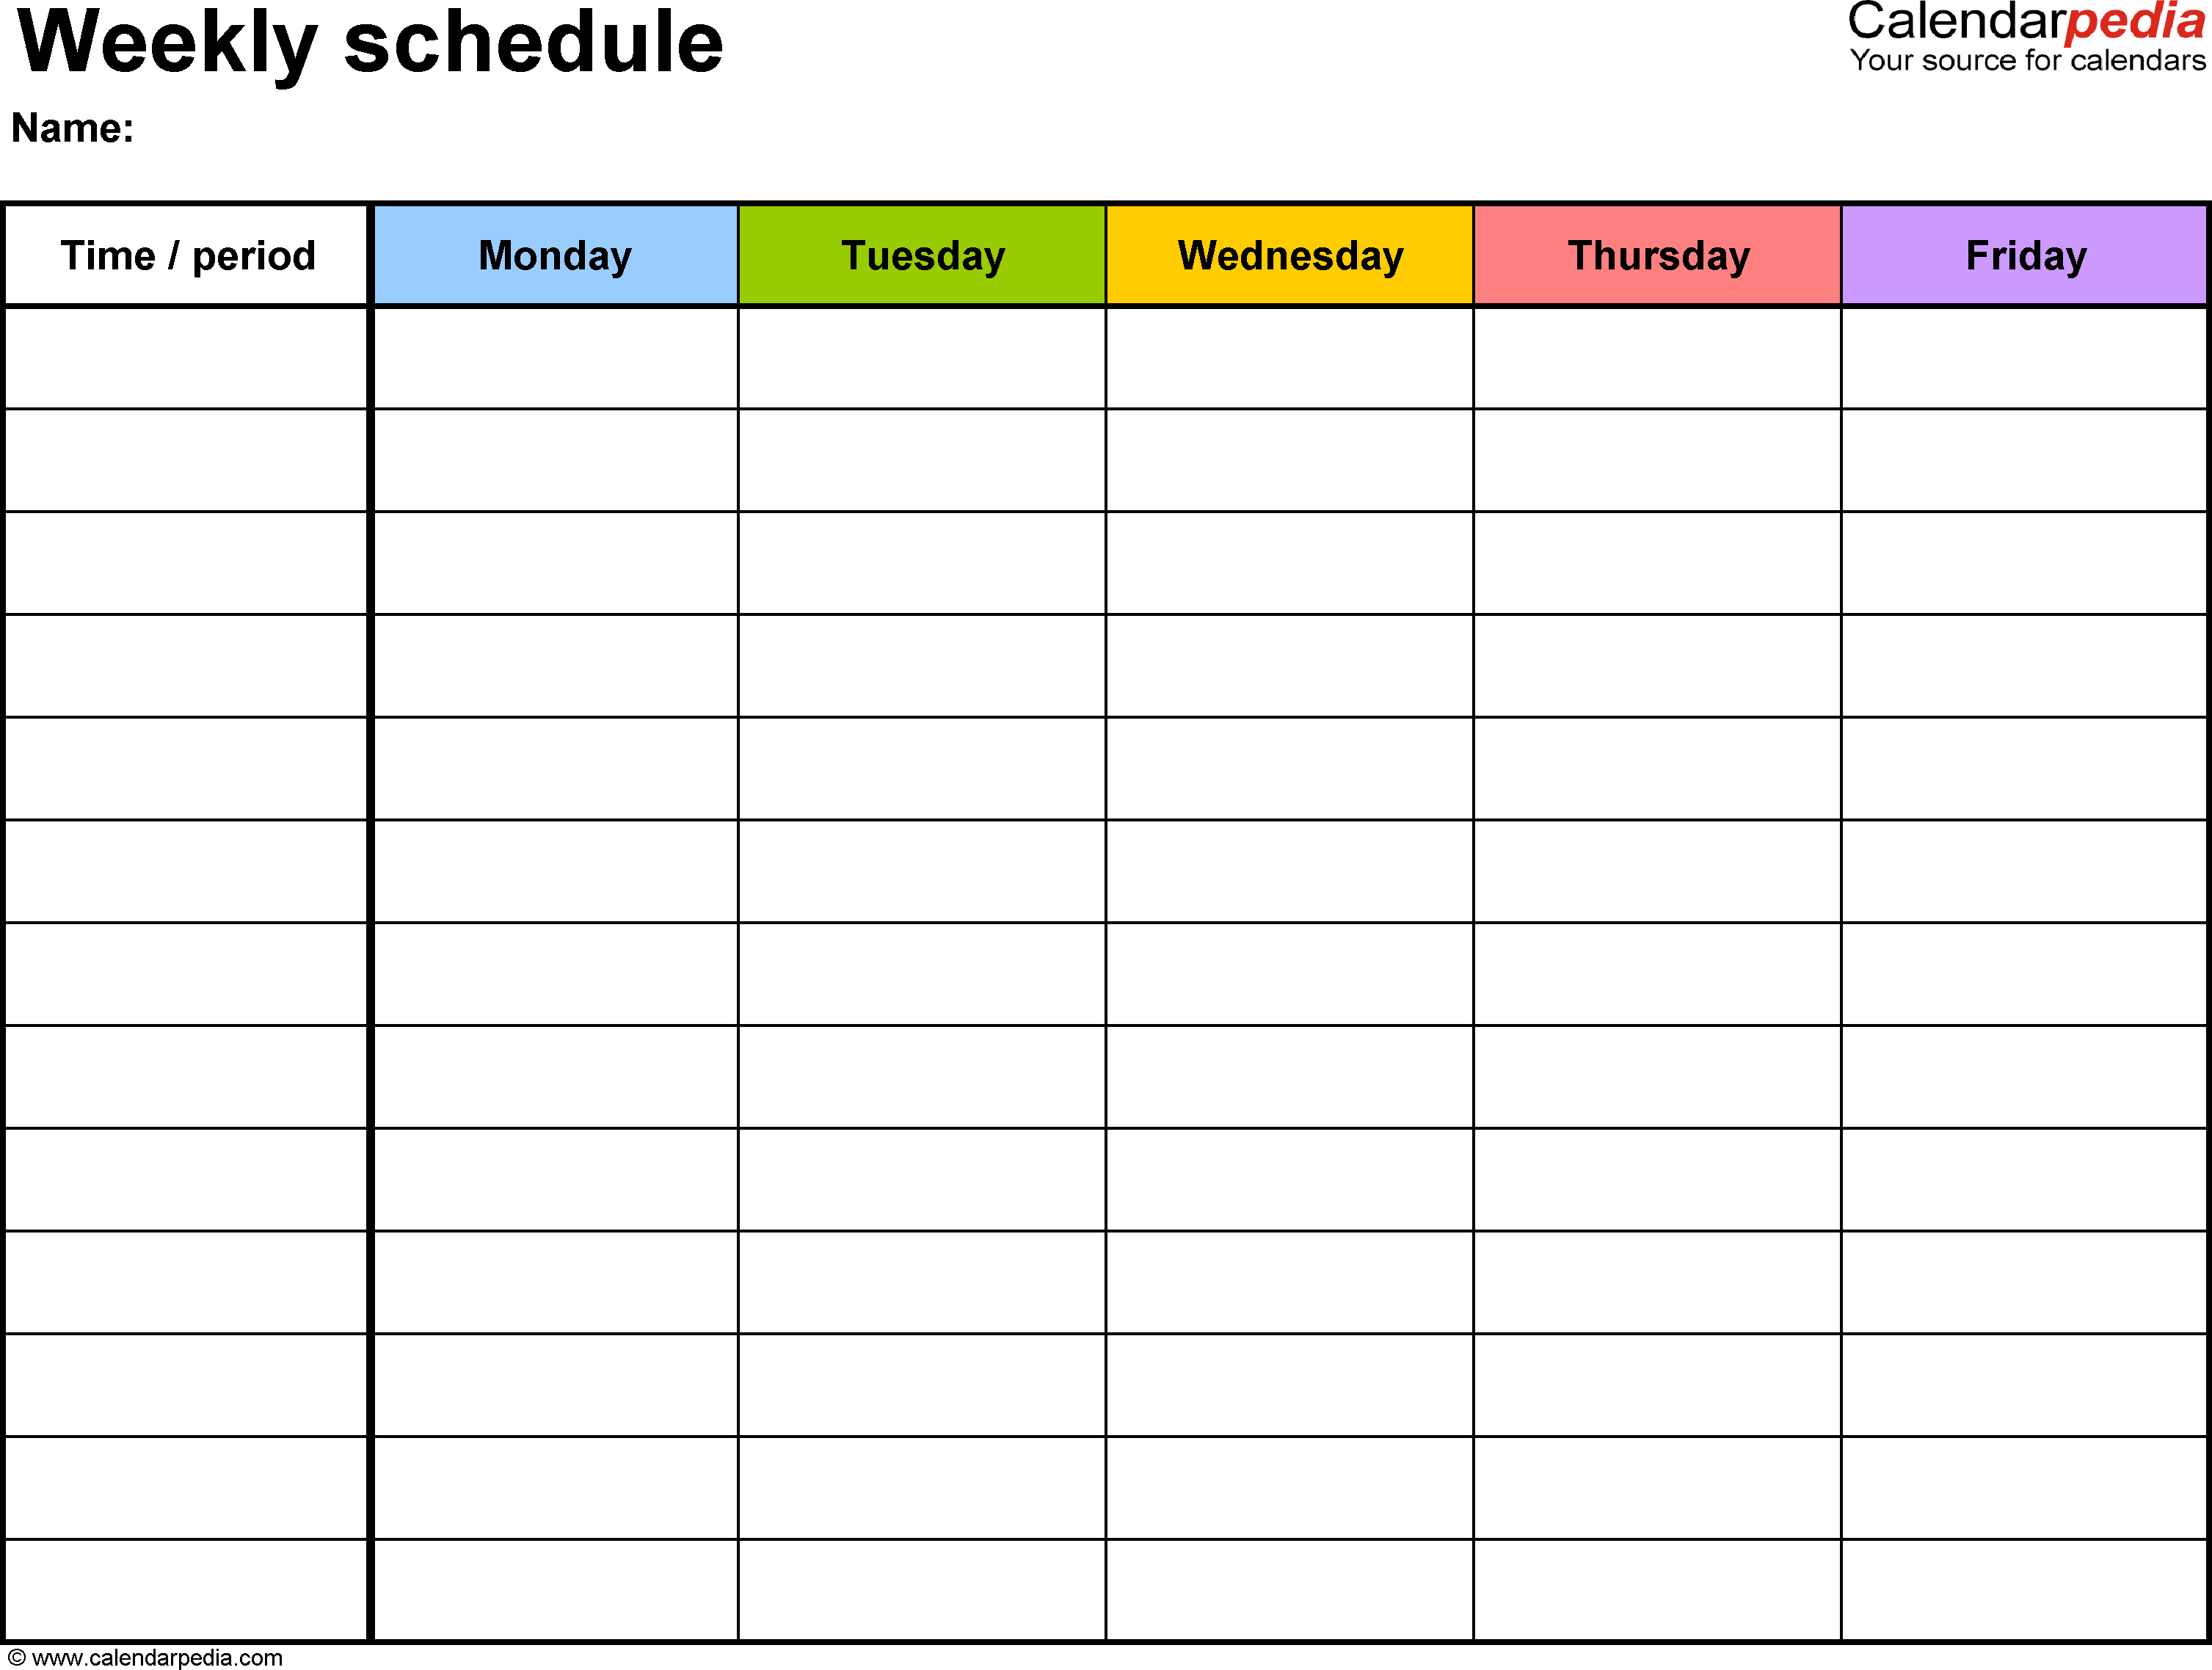 Free Weekly Schedule Templates For Excel - 18 Templates inside 12 Week Blank Calendar Printable